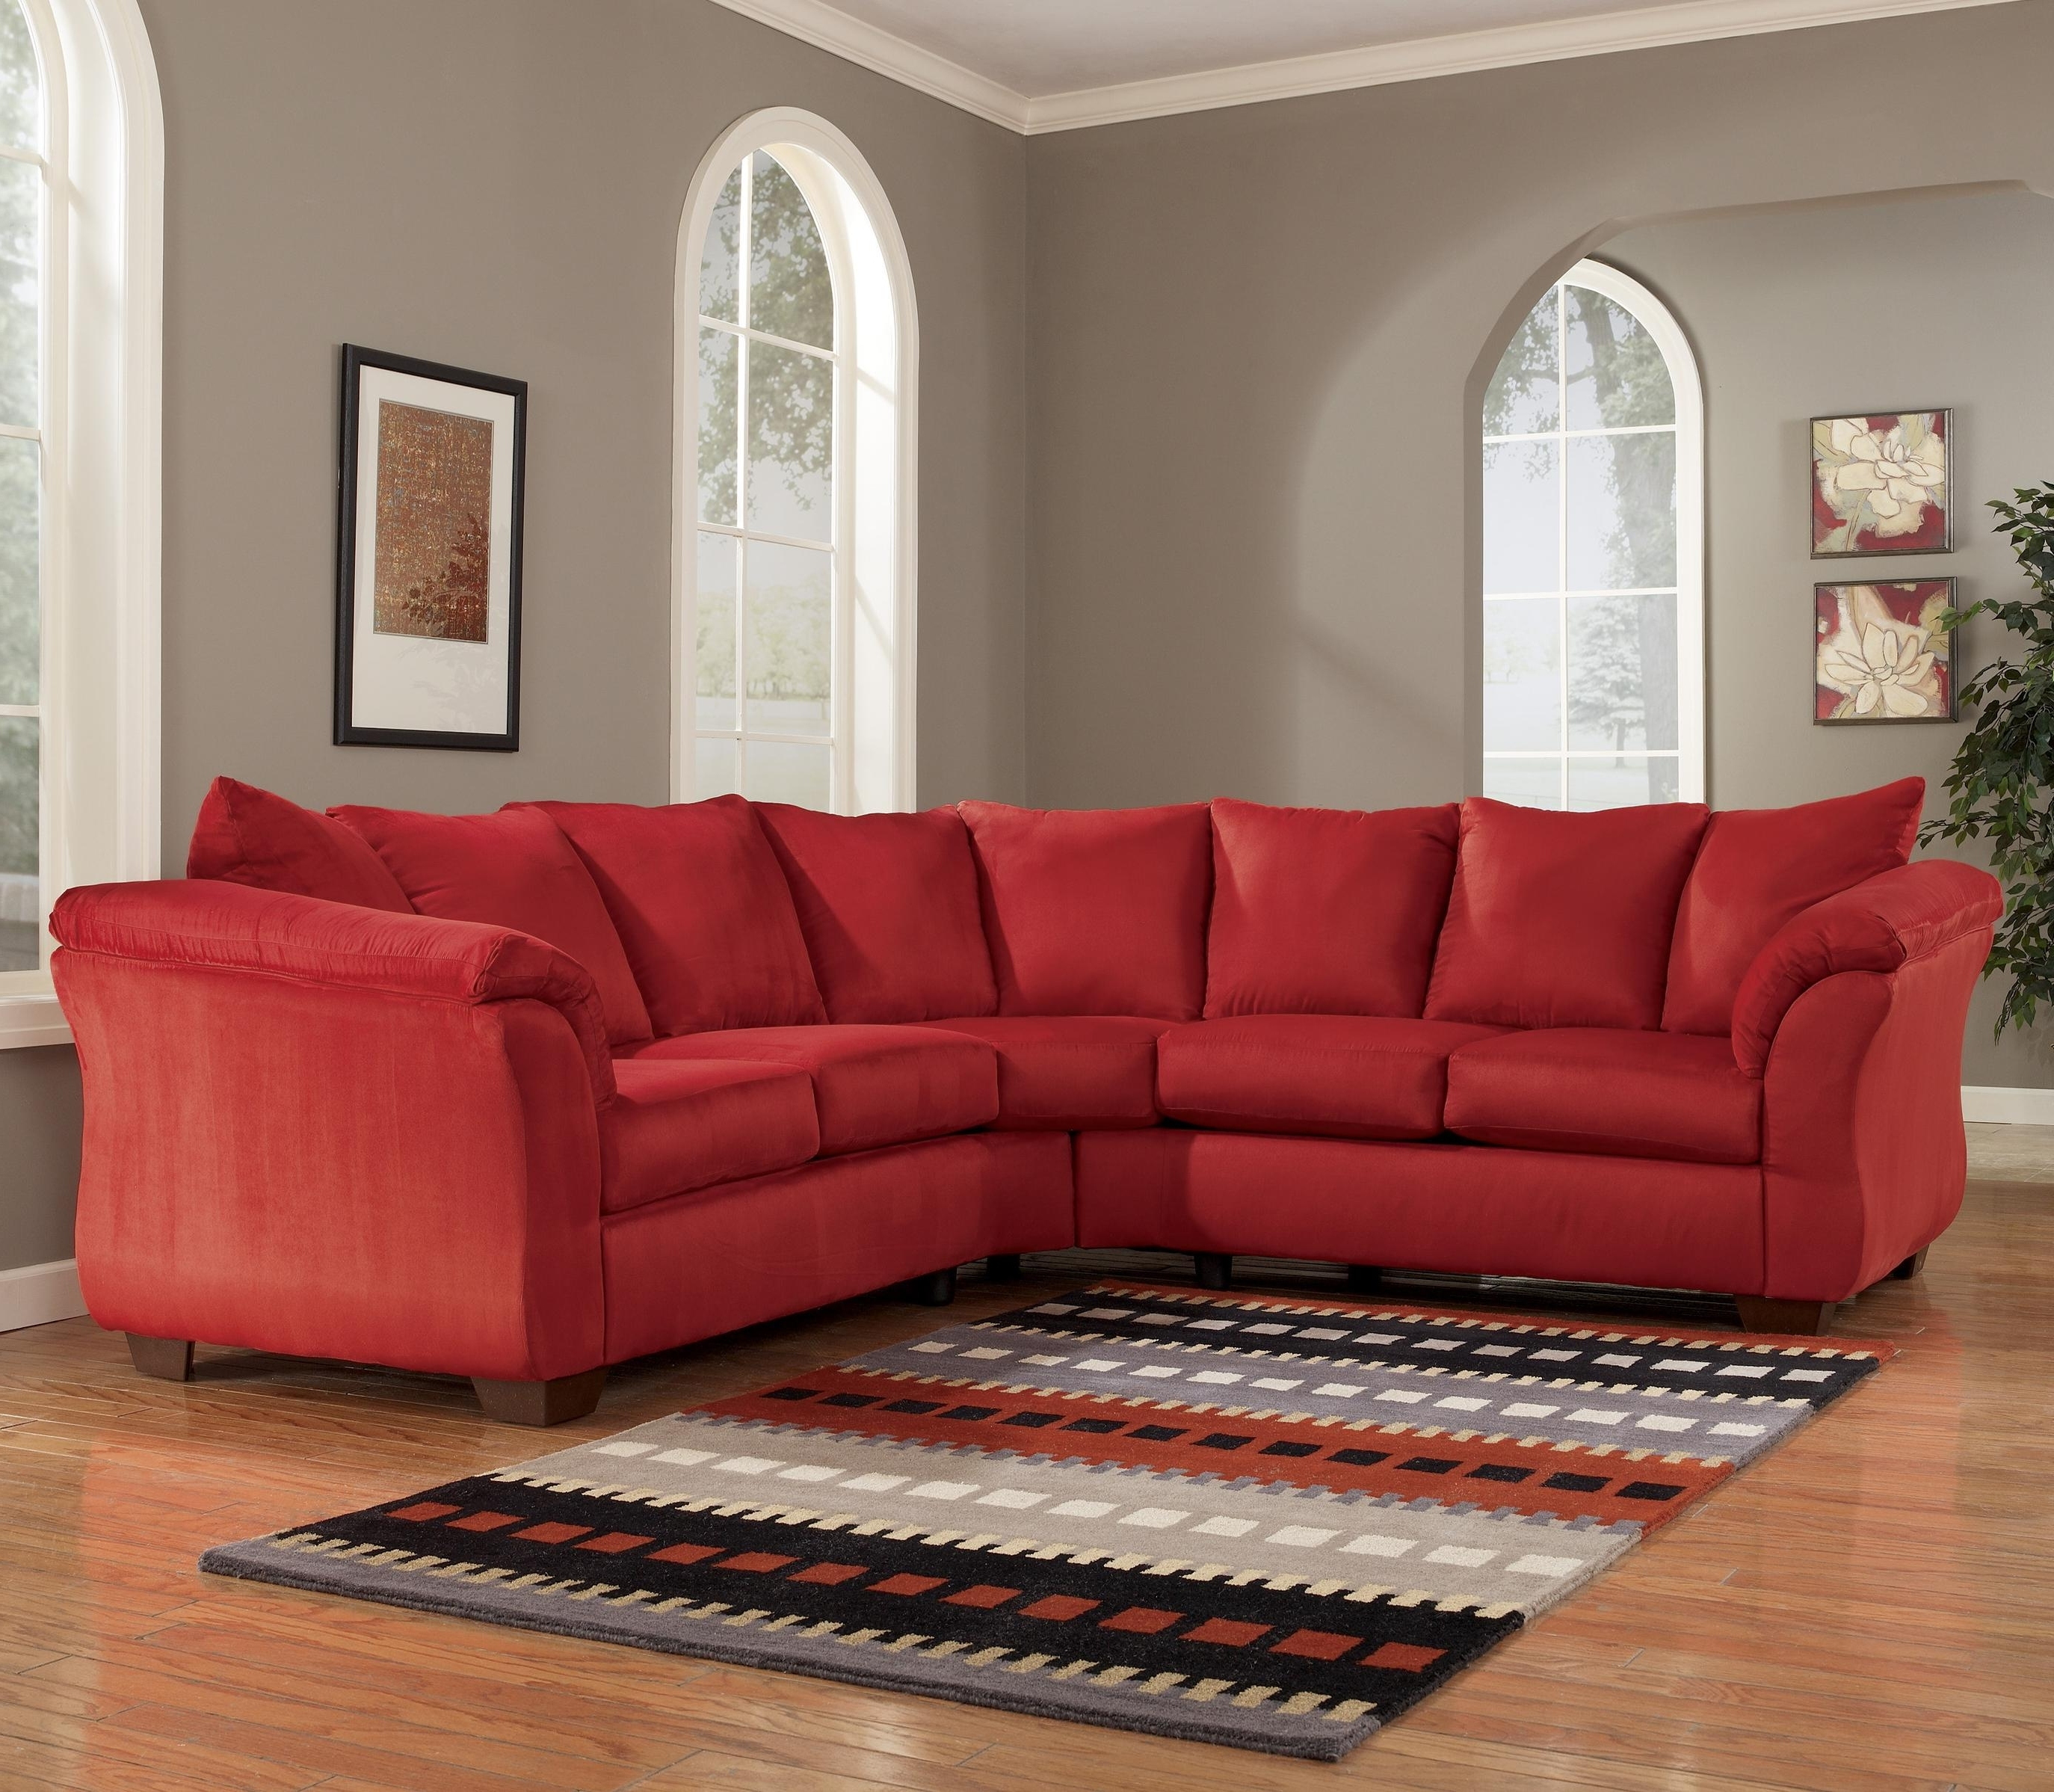 2018 102X102 Sectional Sofas Inside Signature Designashley Darcy – Salsa Contemporary Sectional (View 5 of 20)